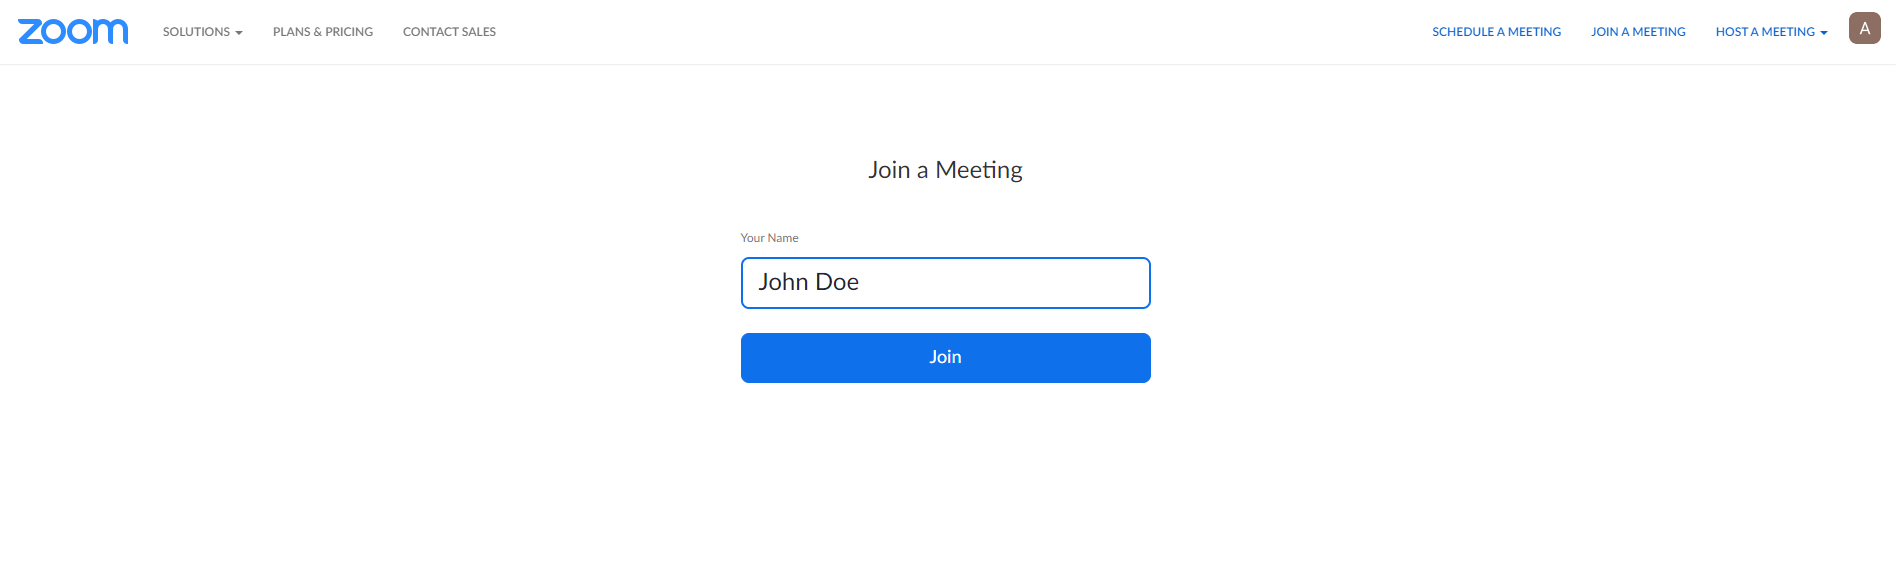 Zoom Meeting Manager - 7